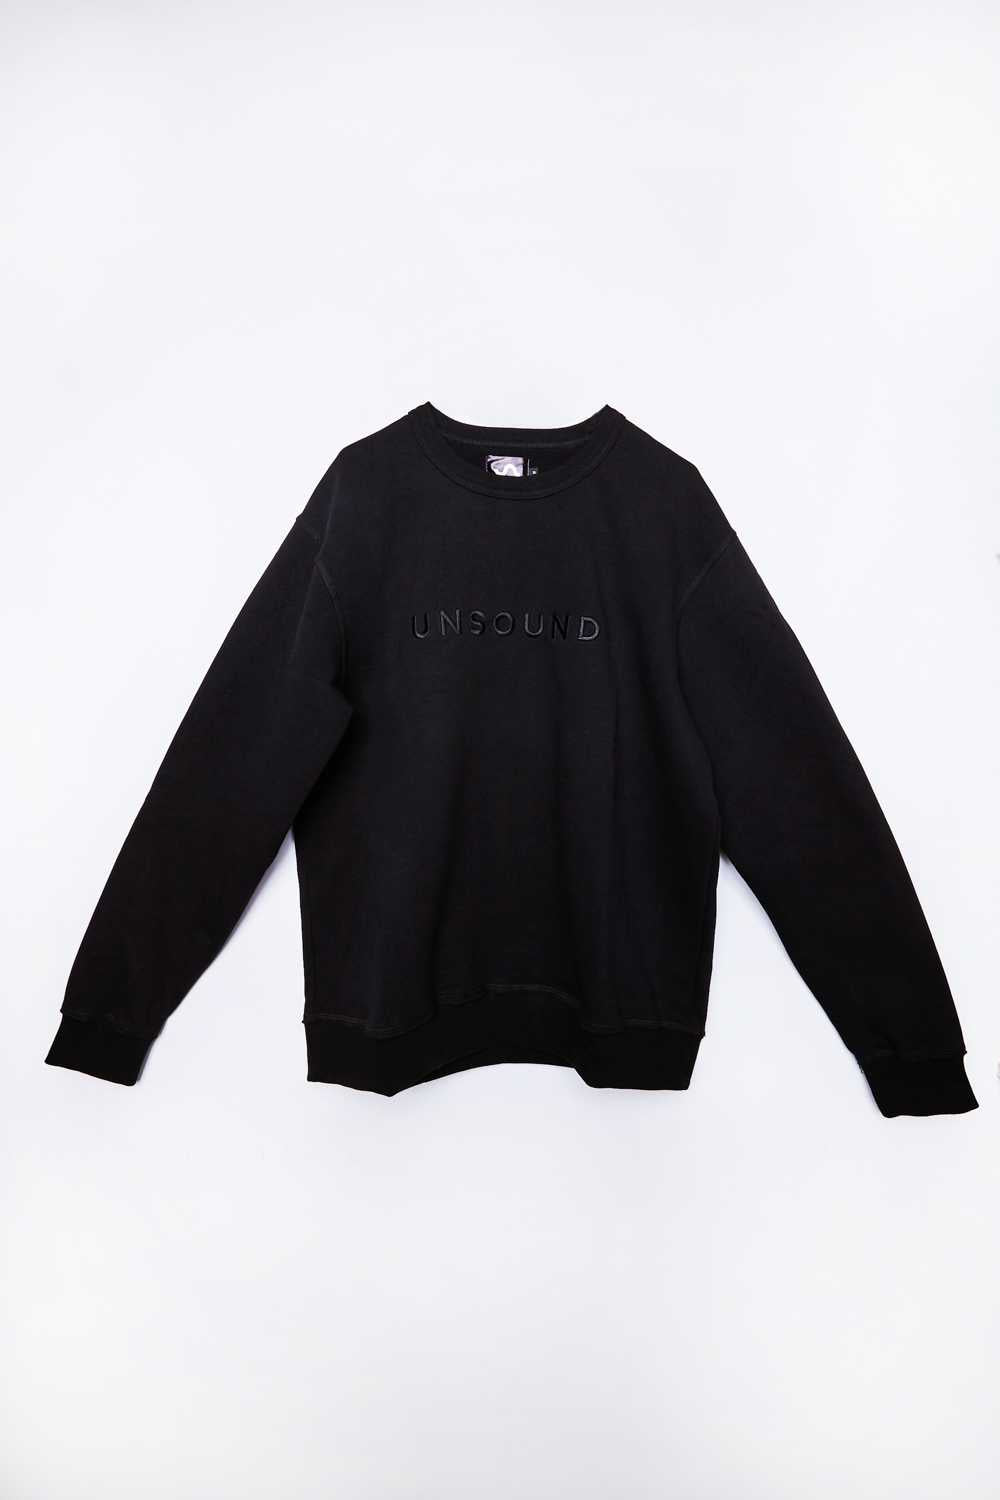 Oversized Washed Black Crewneck Jumper with Unsound embroidery